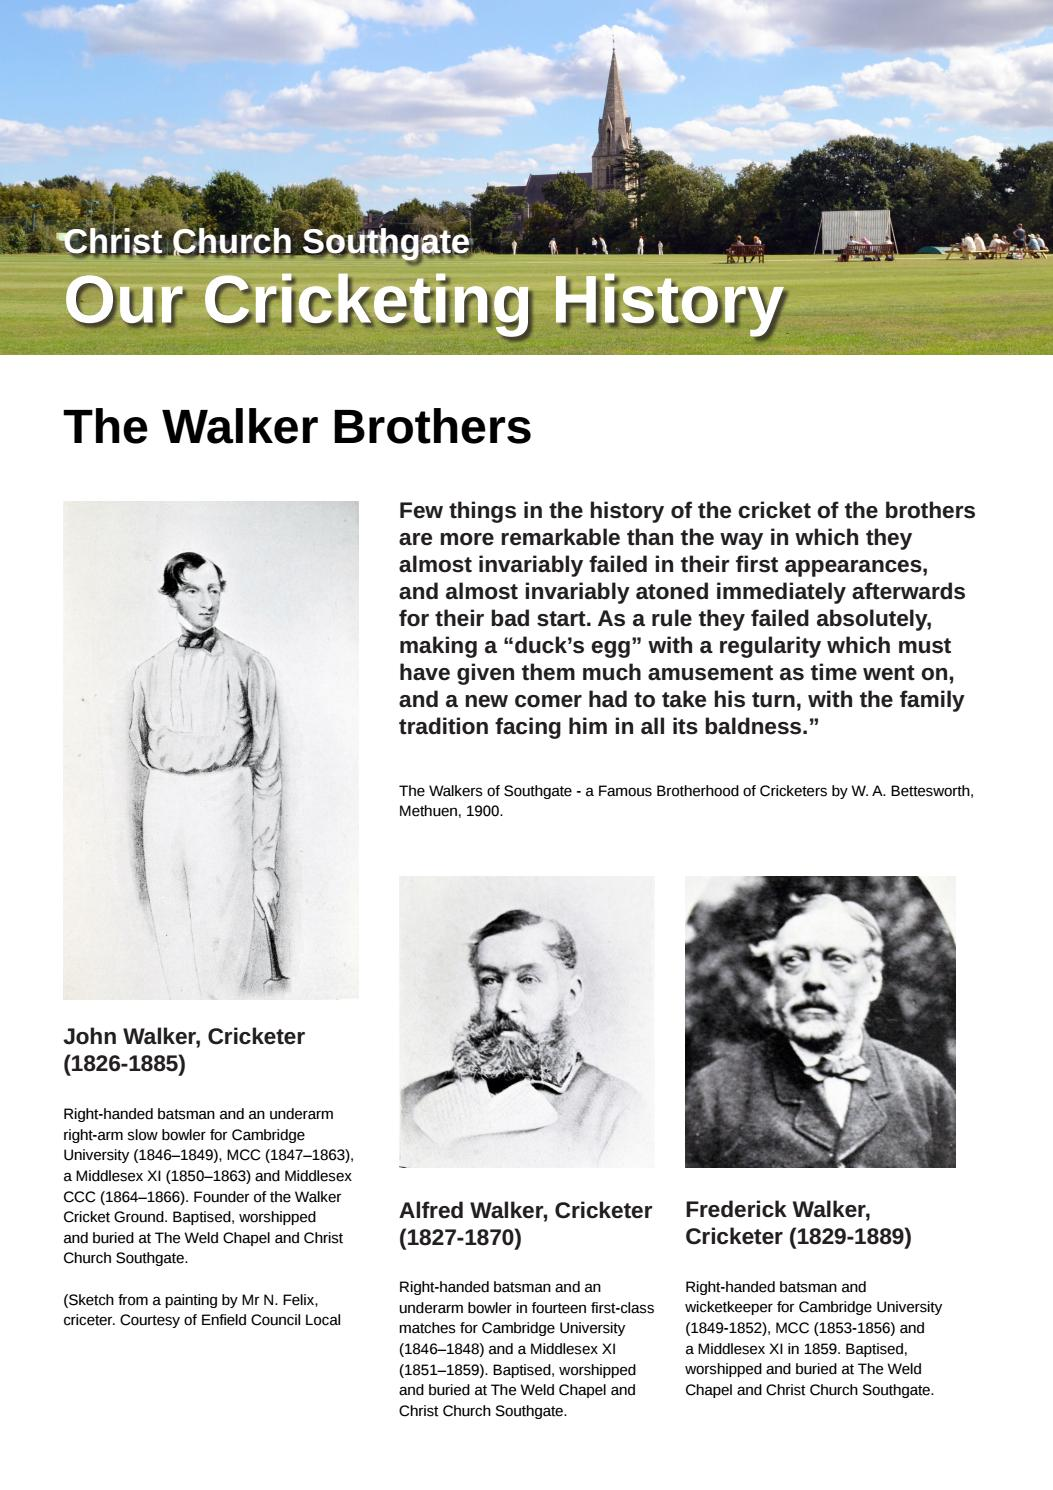 Christ Church Southgate - Our Cricketing History! by Christ Church